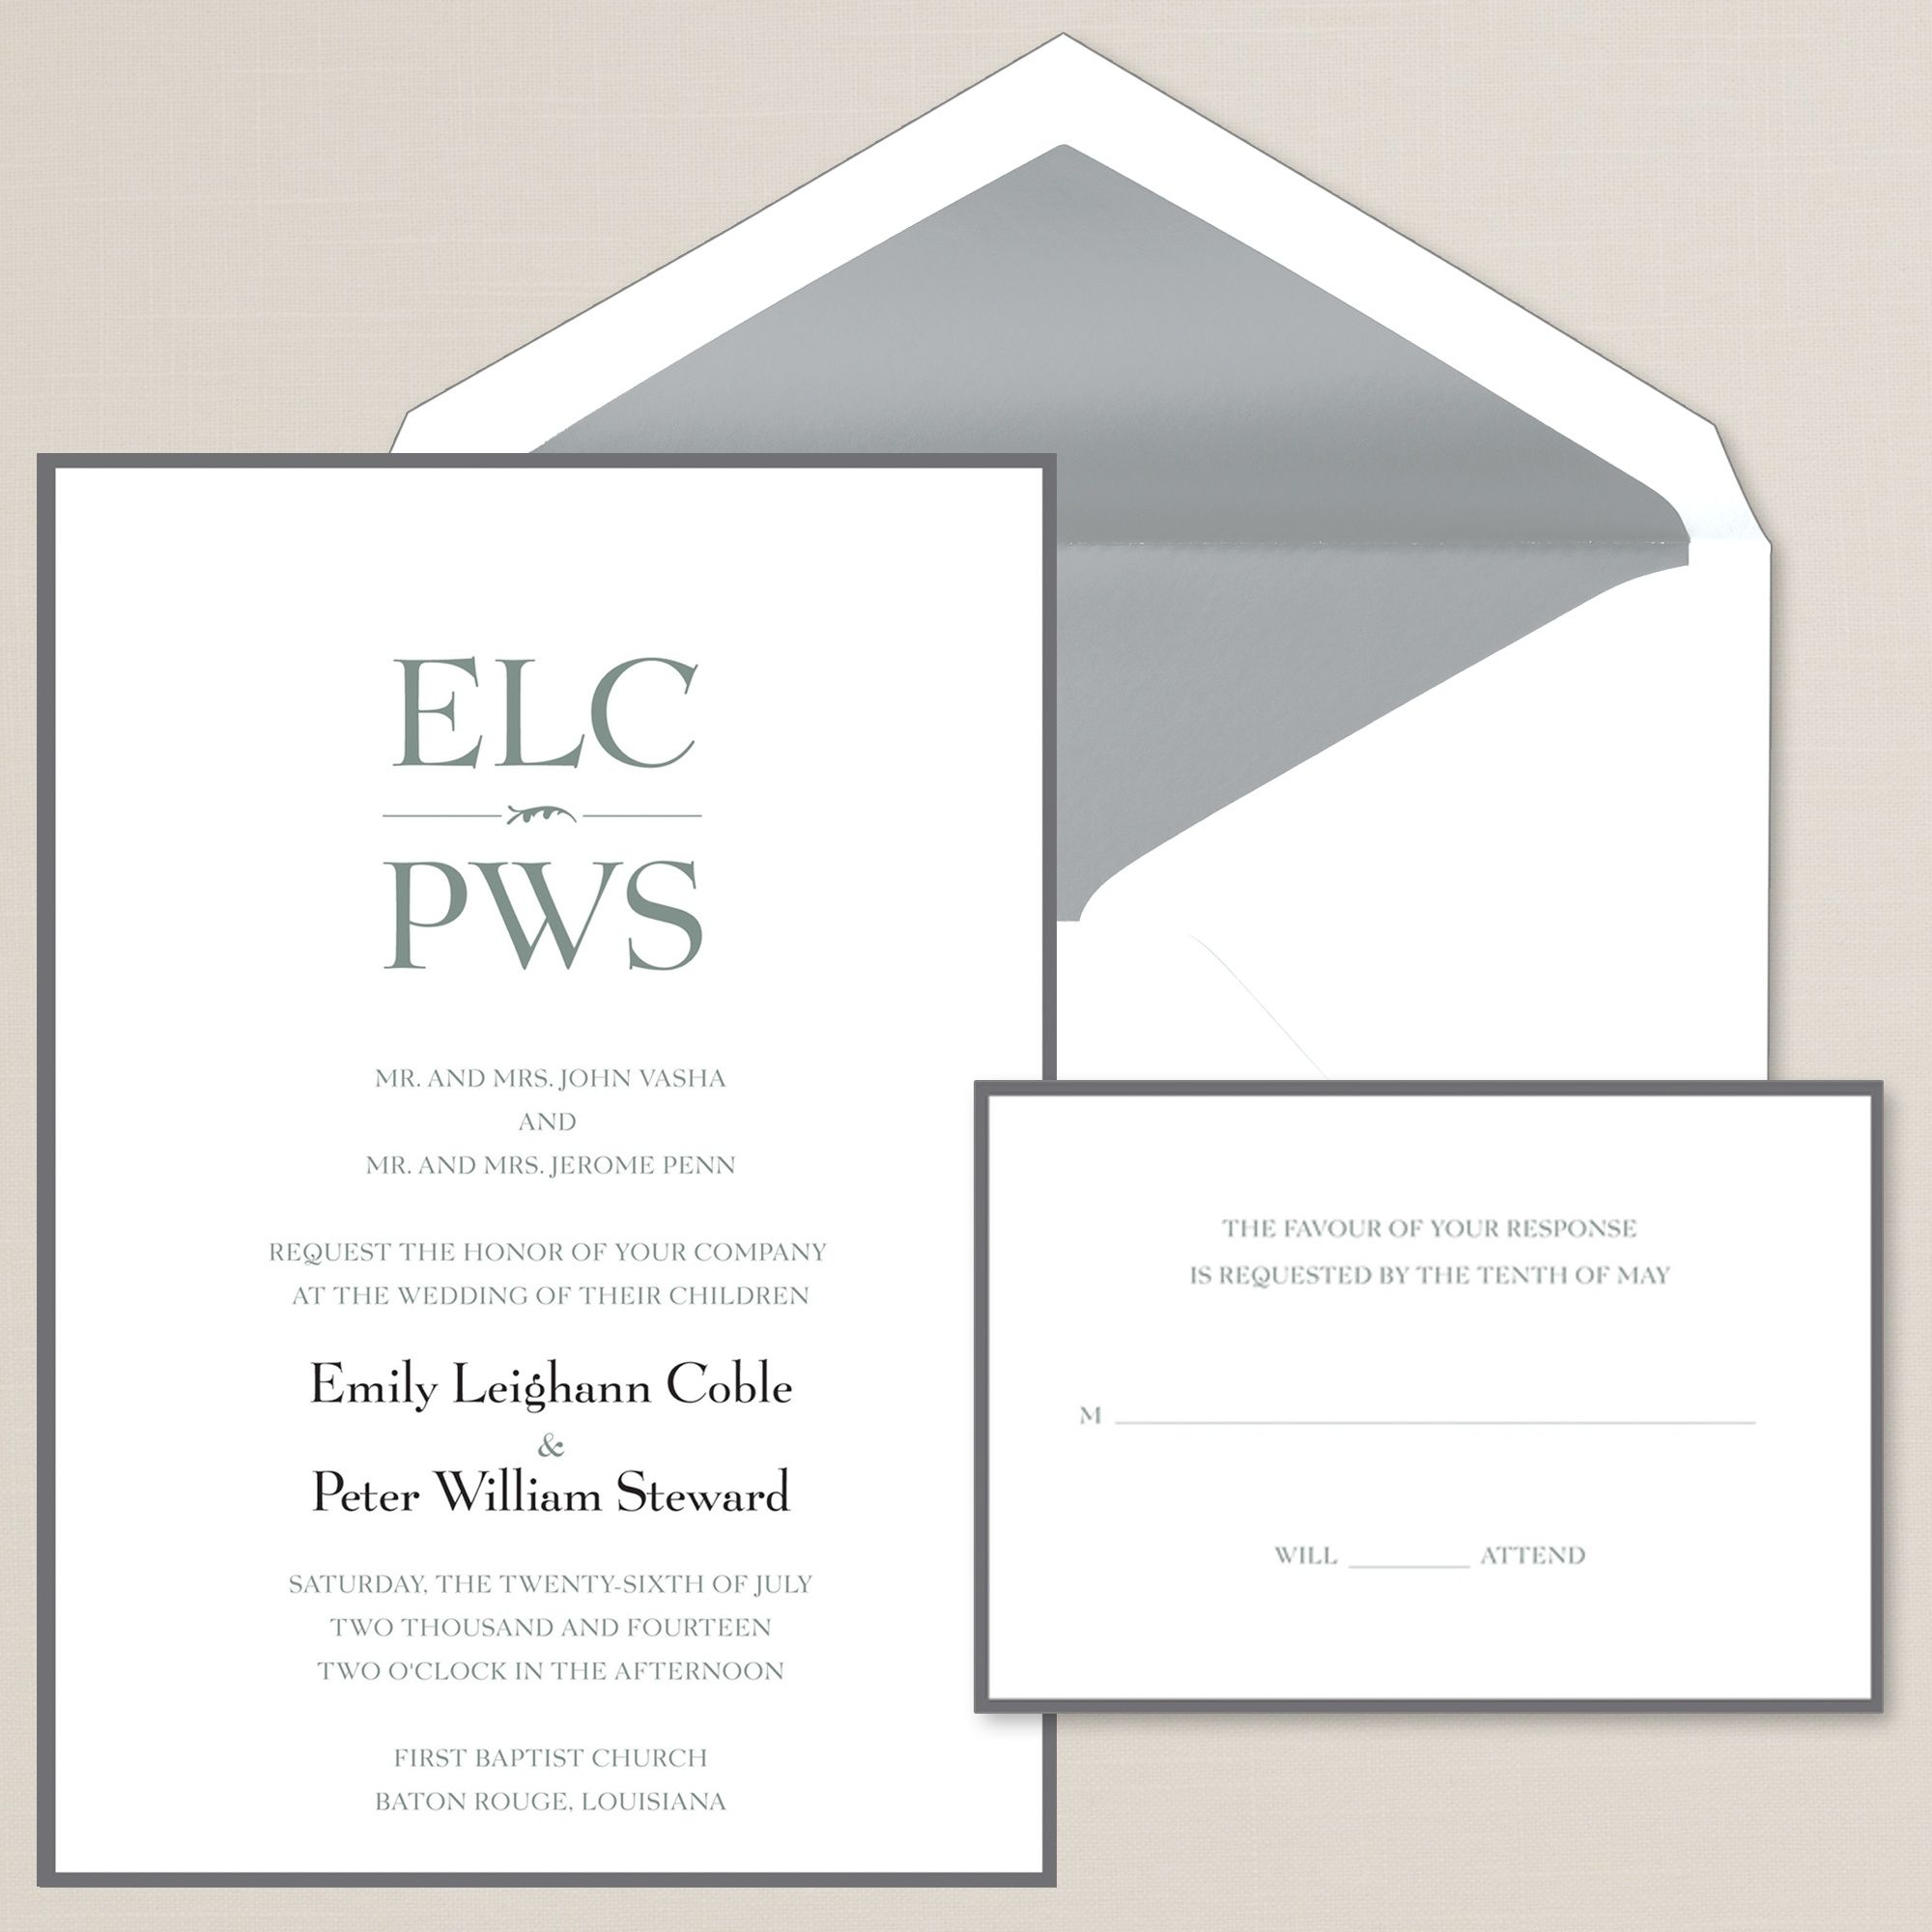 Sincerely Yours Wedding Invitation | #exclusivelyweddings | Cards ...